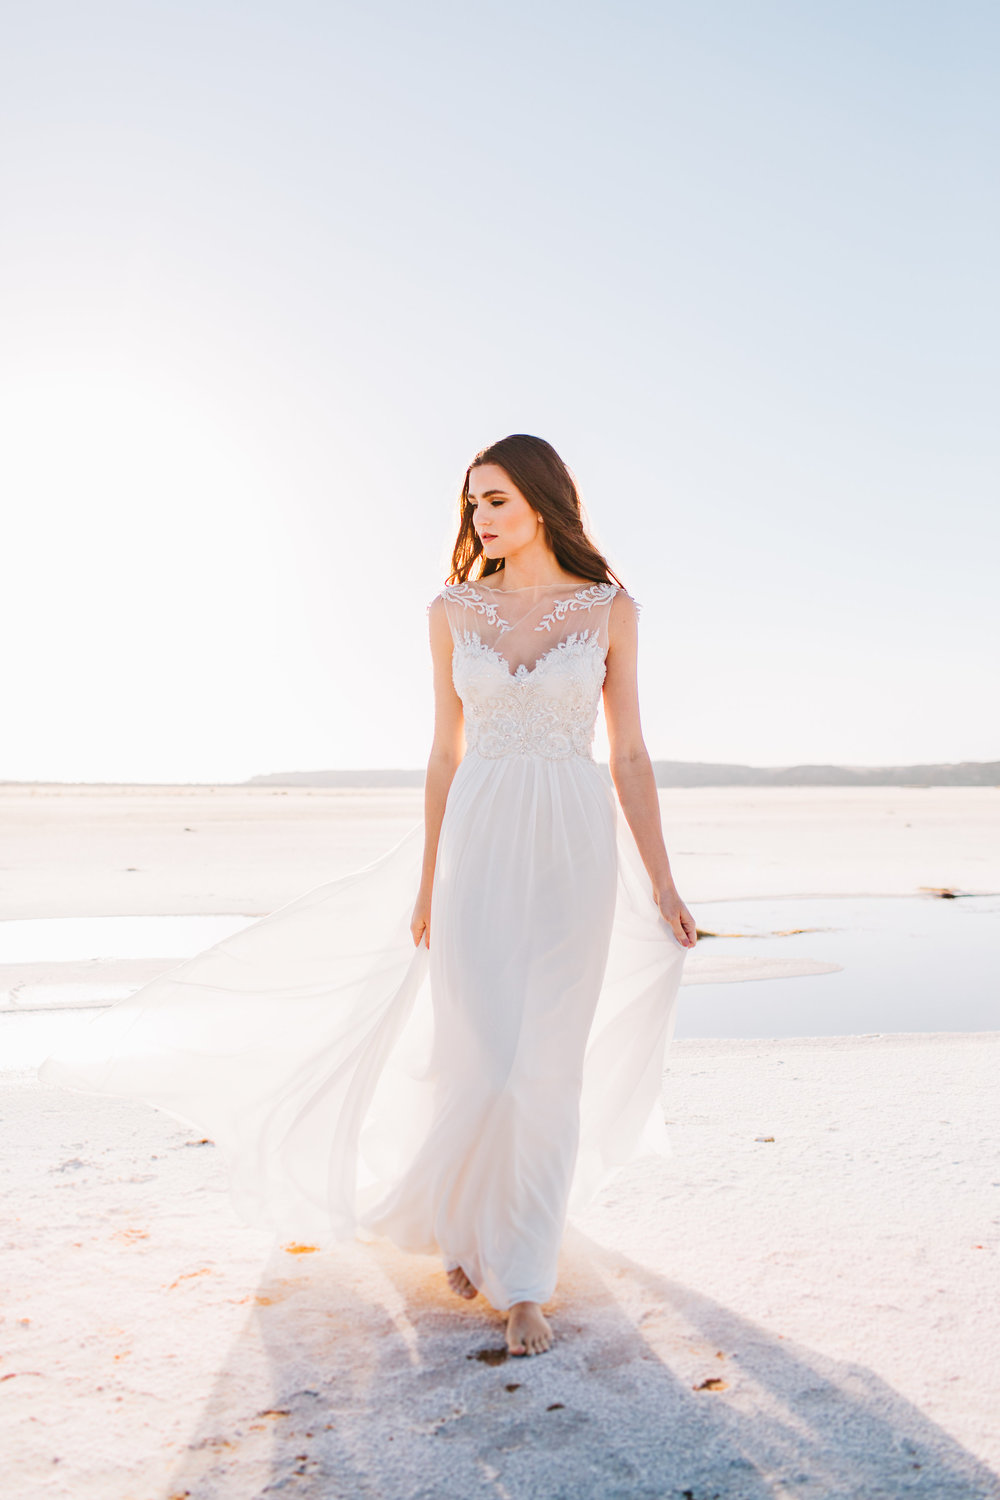 BridesGownShoot-24.jpg